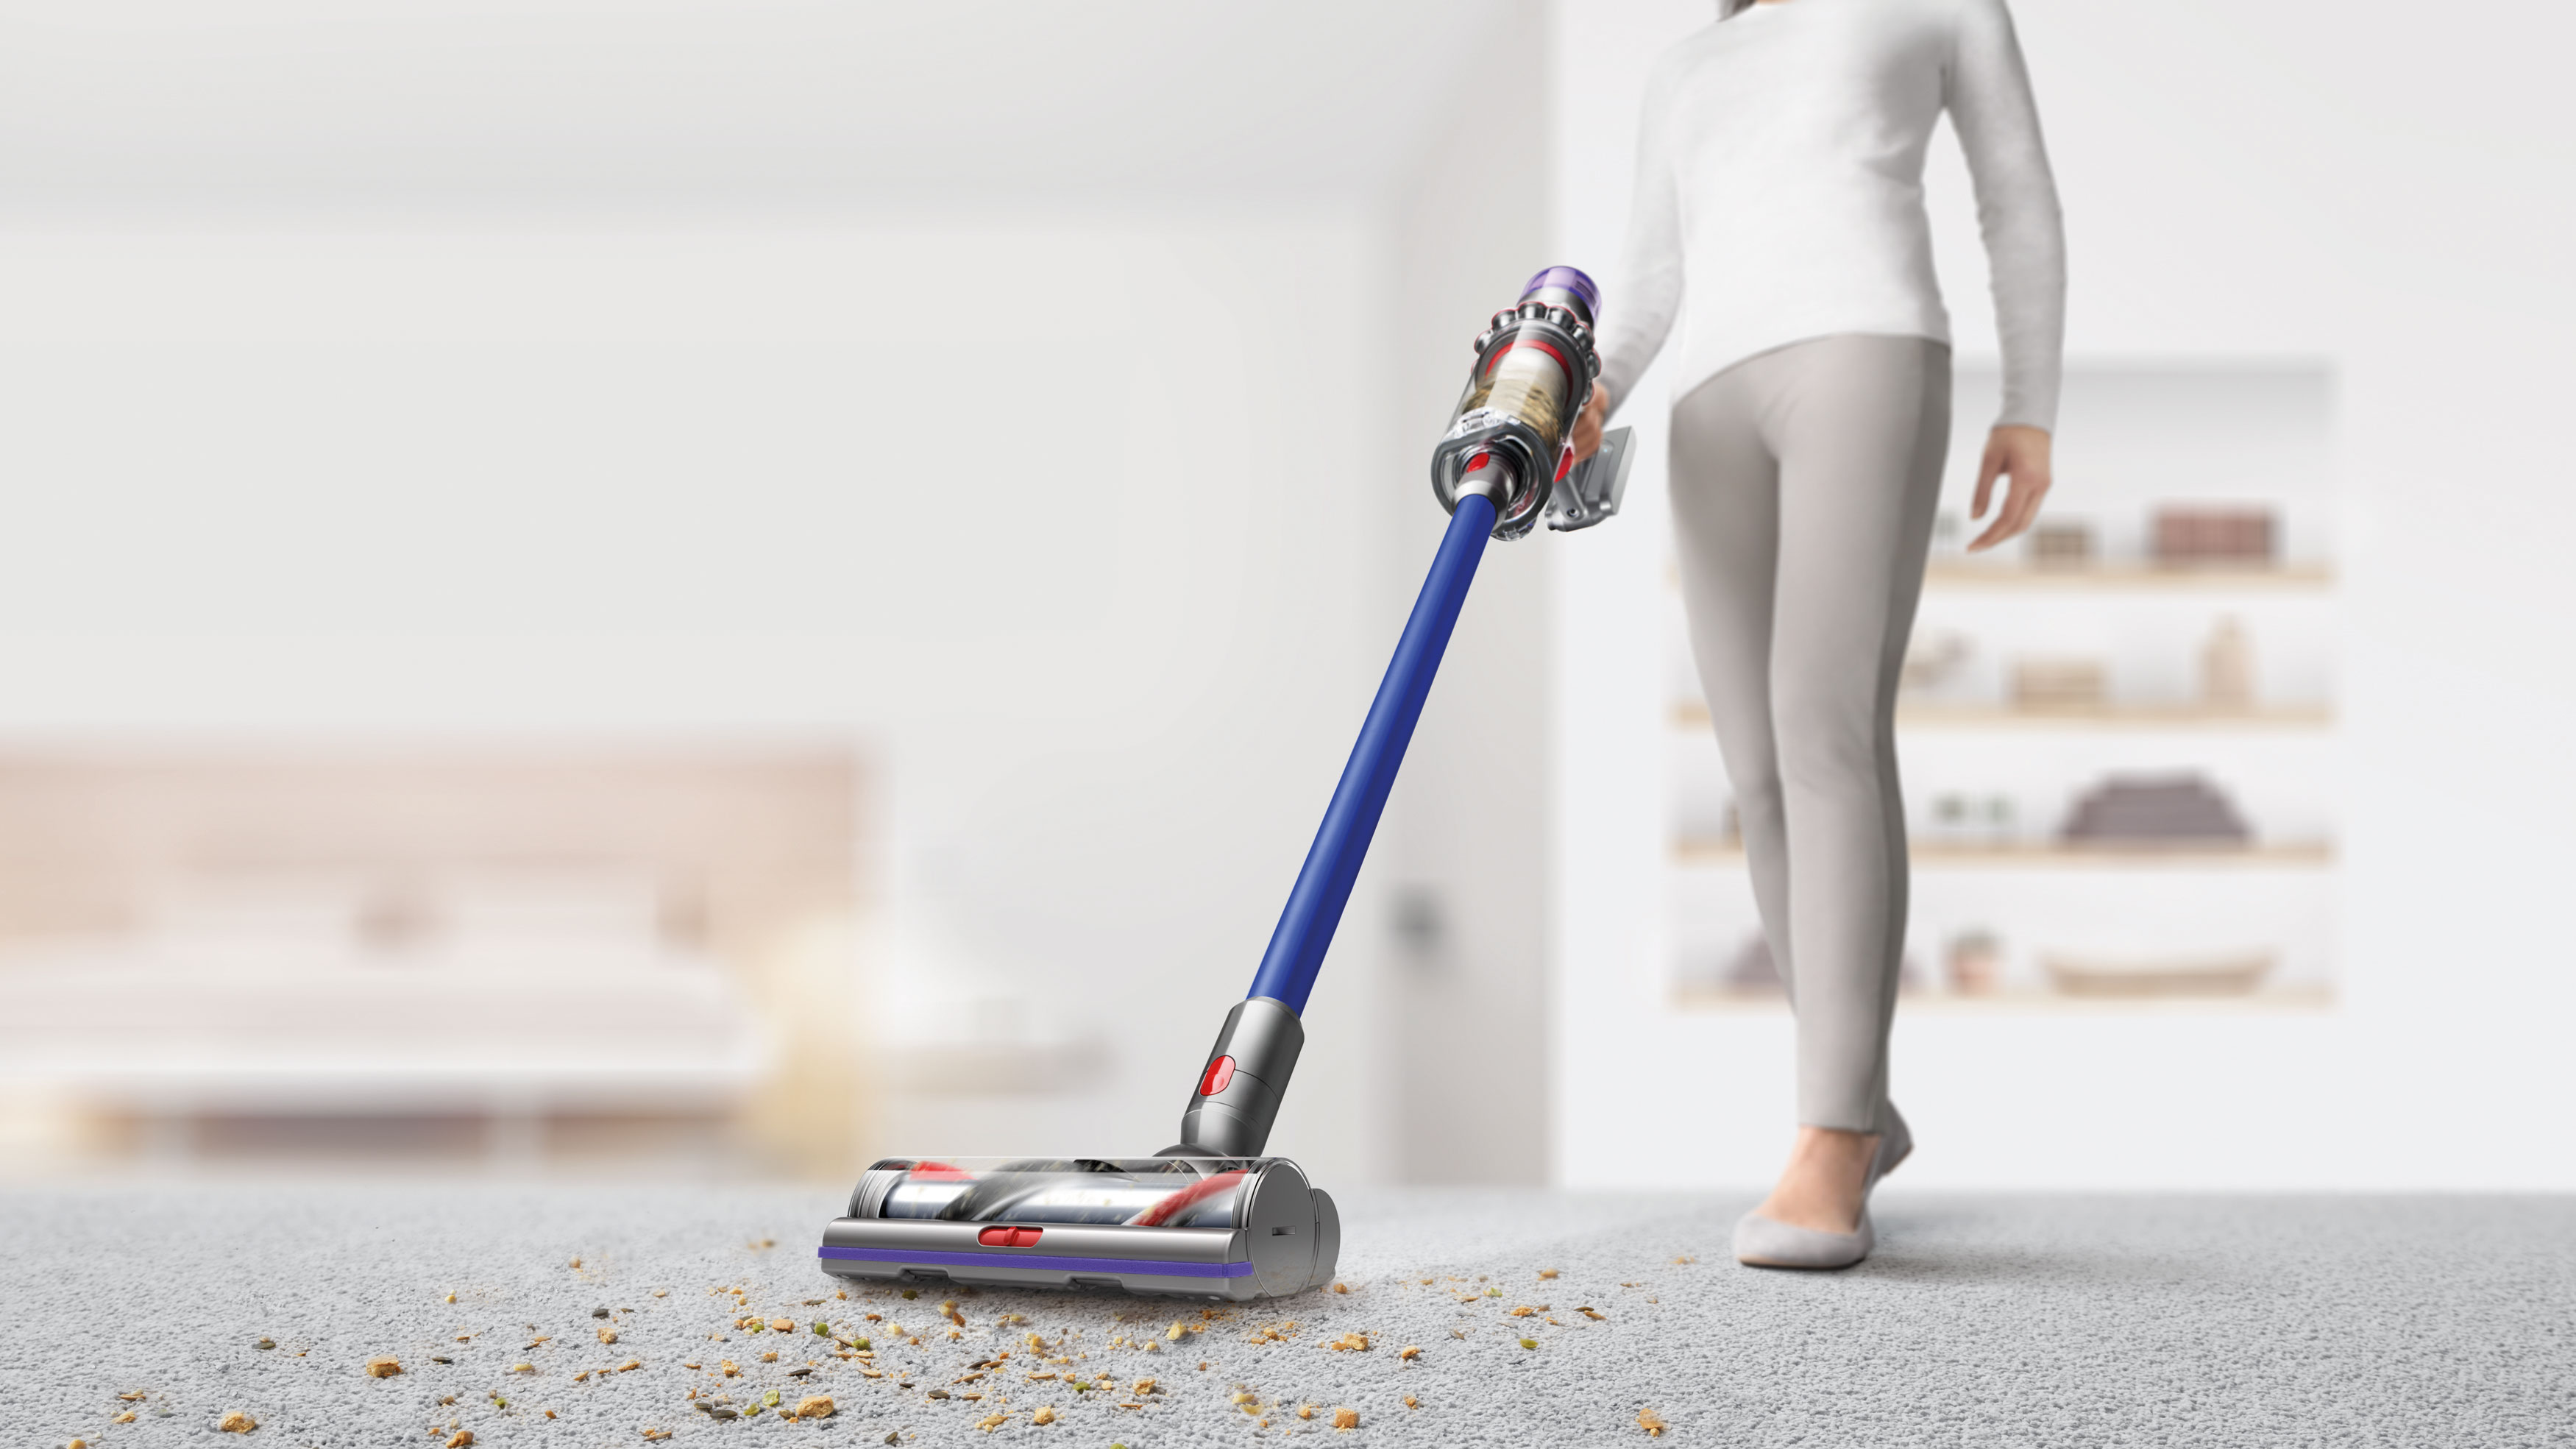 Dyson expands its home and well-being portfolio for India with three new products